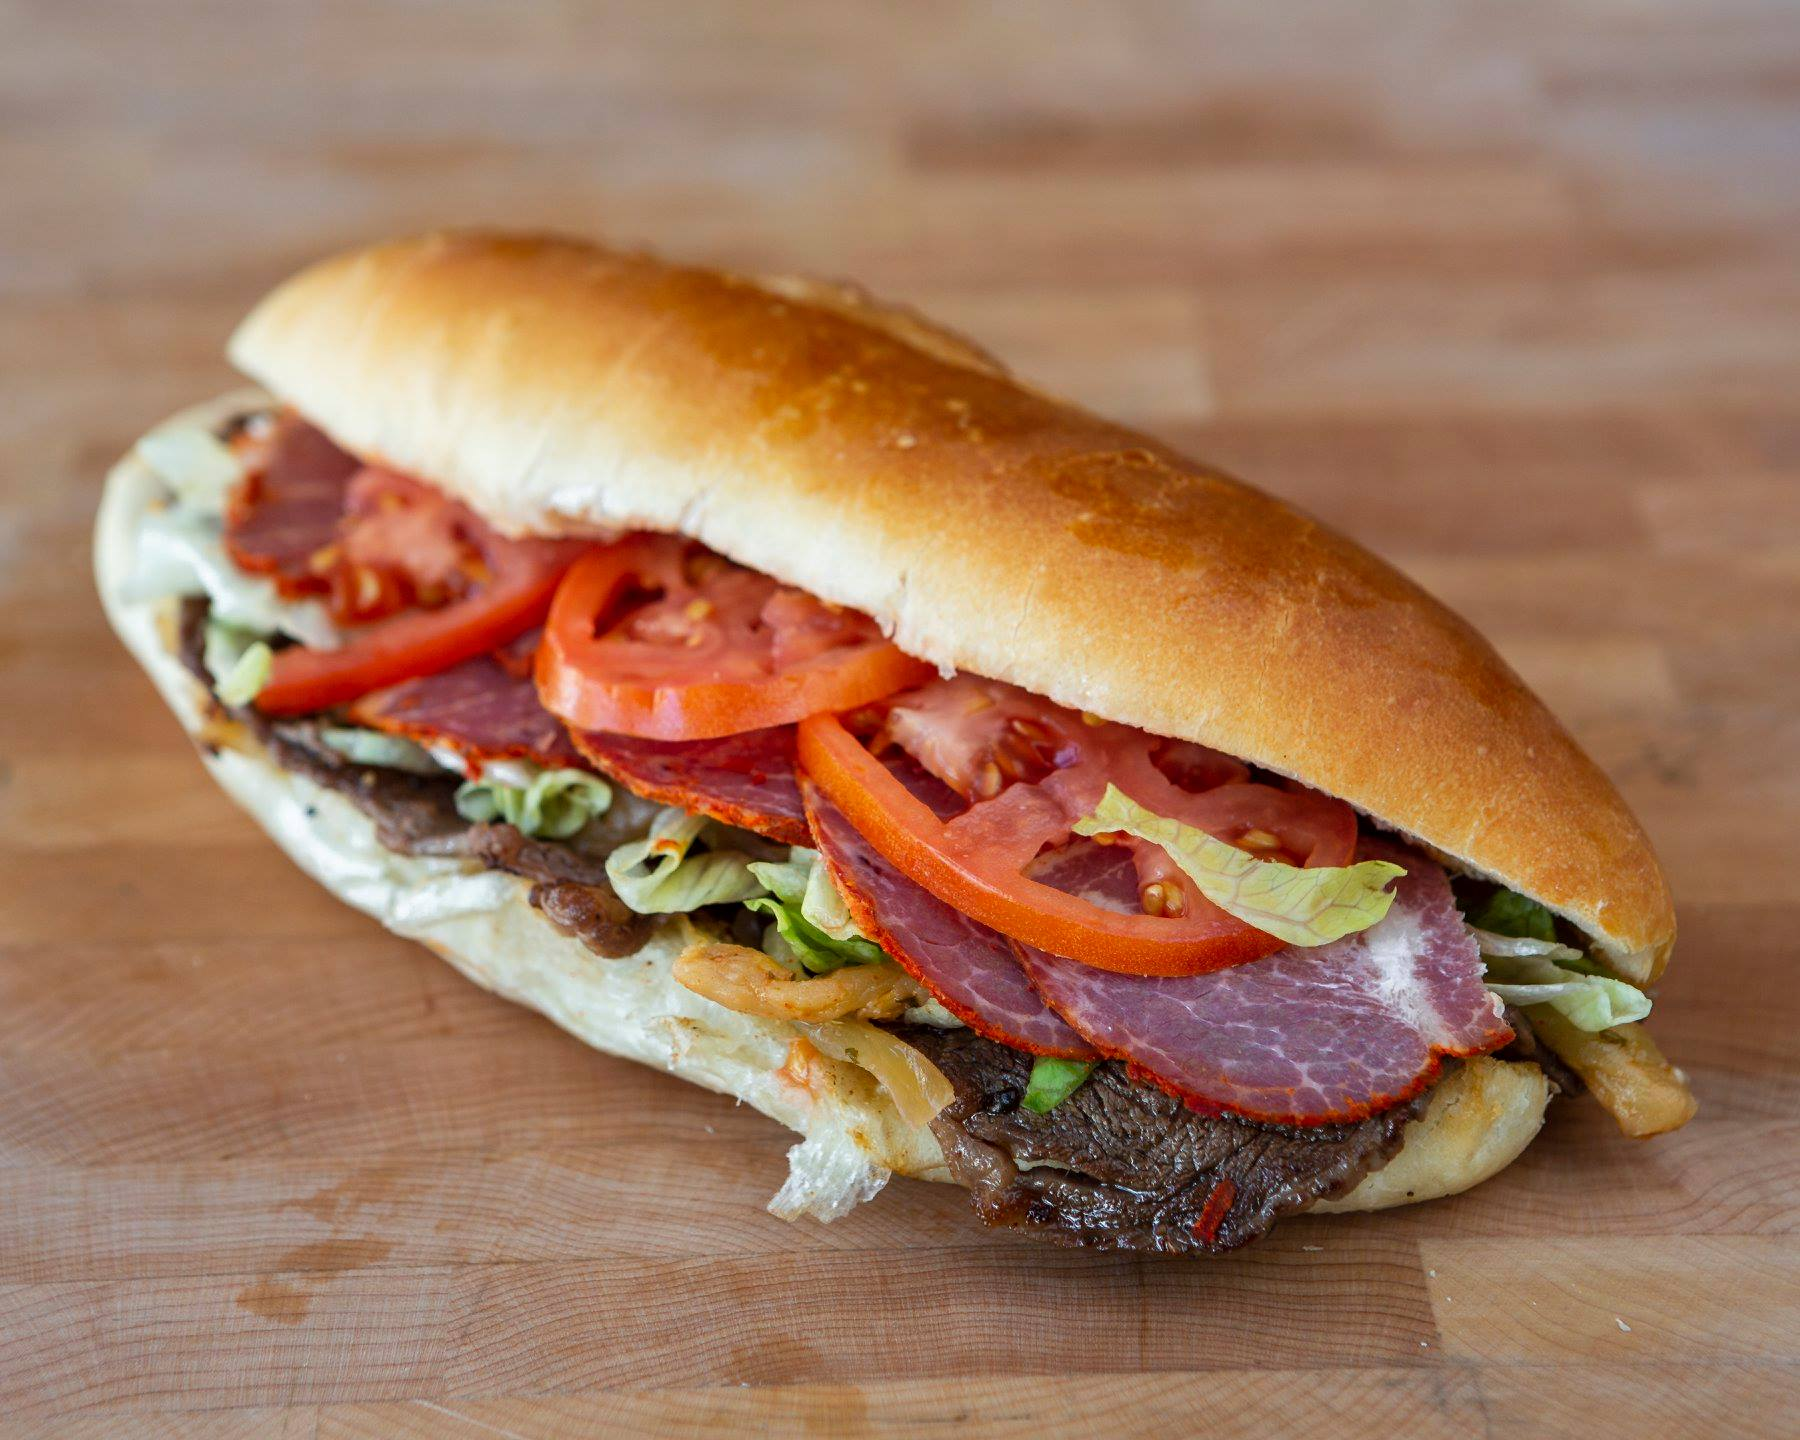 A steak-capicollo sandwich with lettuce and tomato on a long bun.